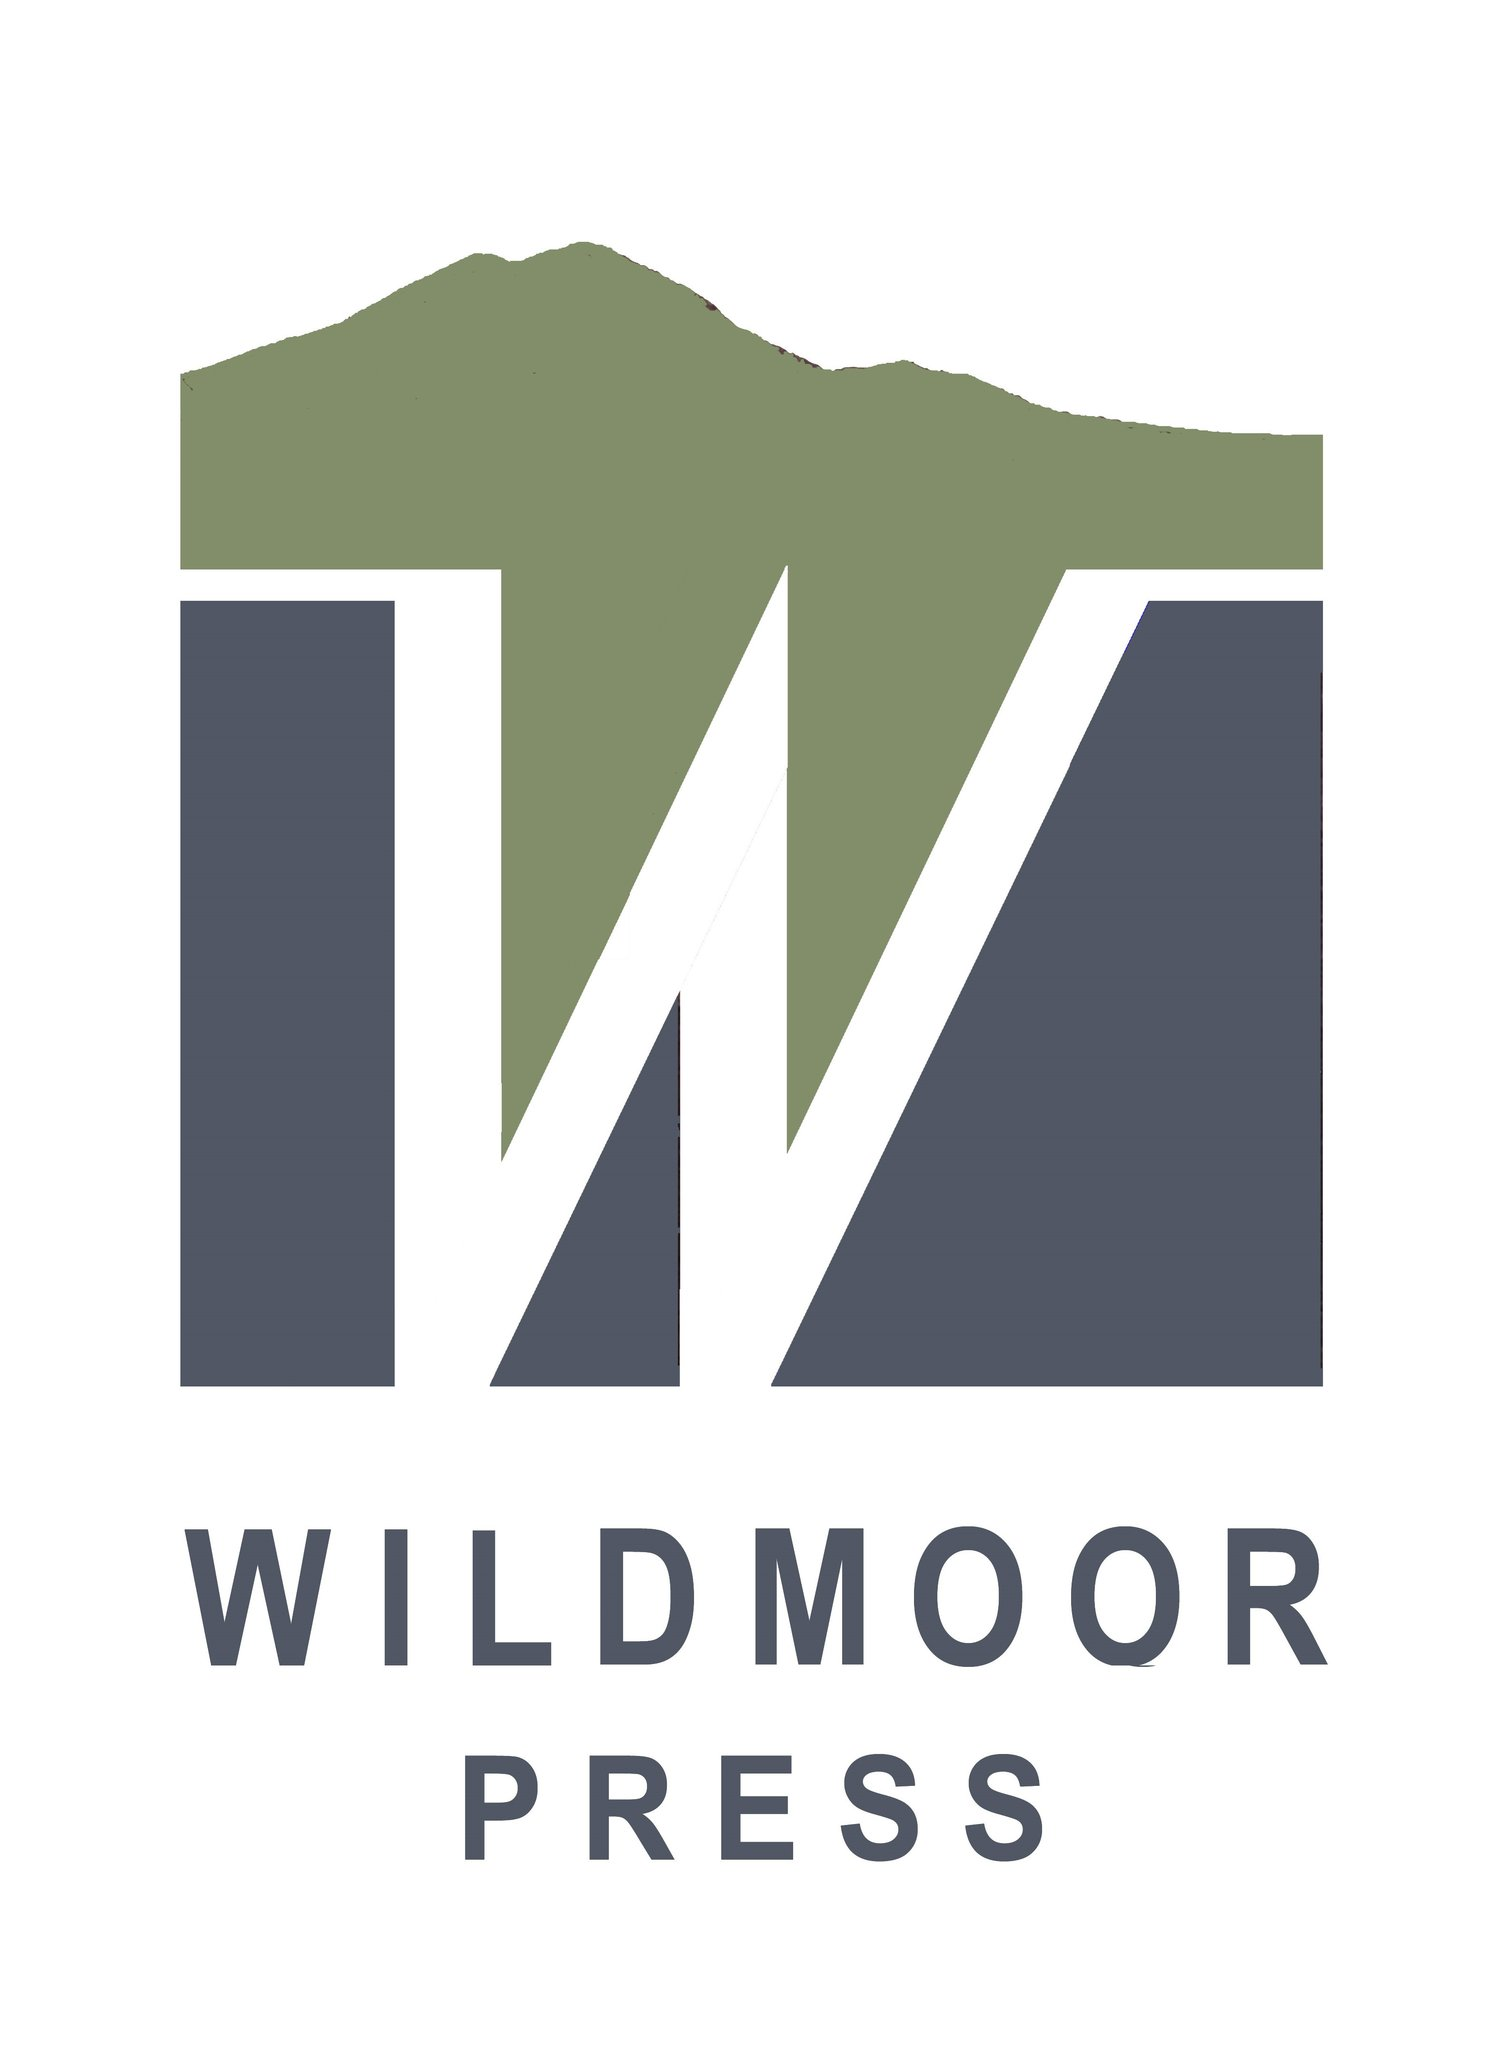 WILDMOOR PRESS